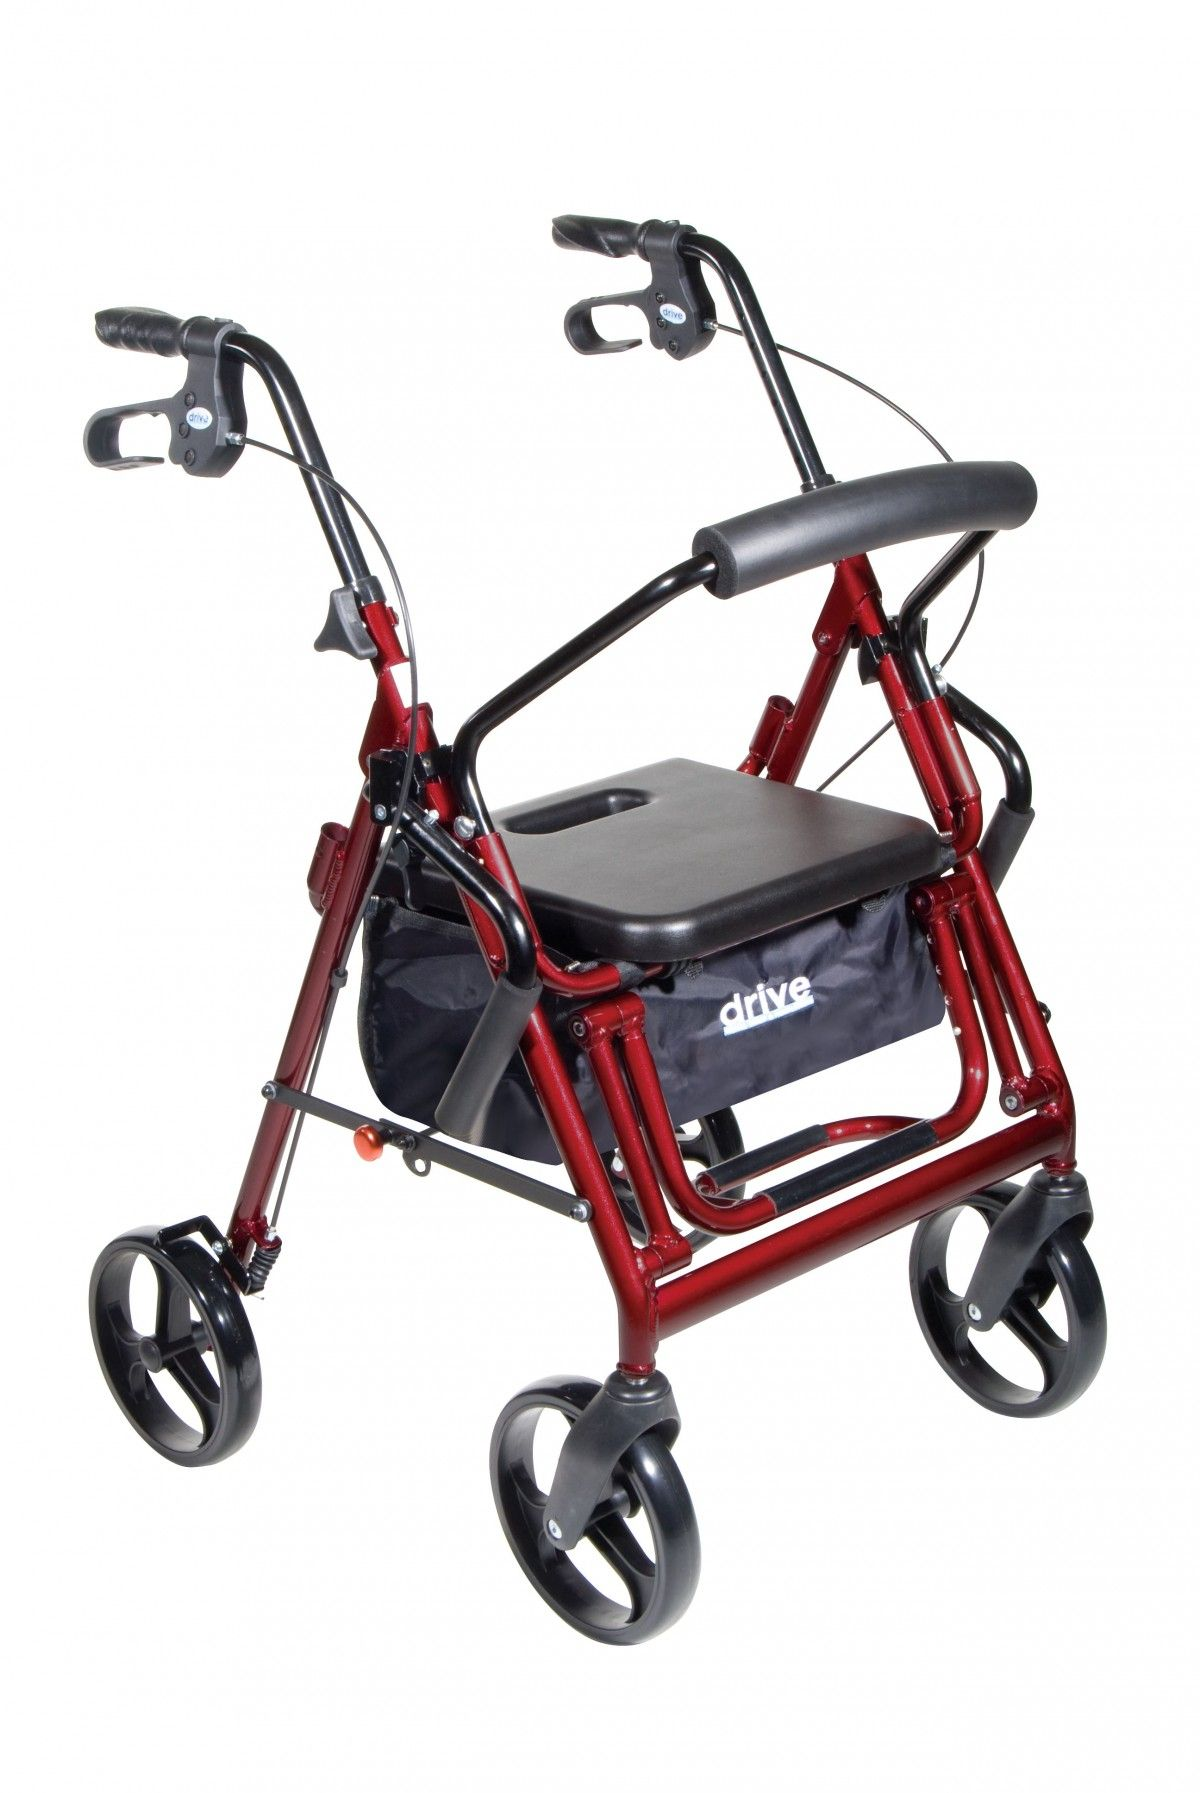 Drive Duet Rollator/Transport Chair Transport wheelchair